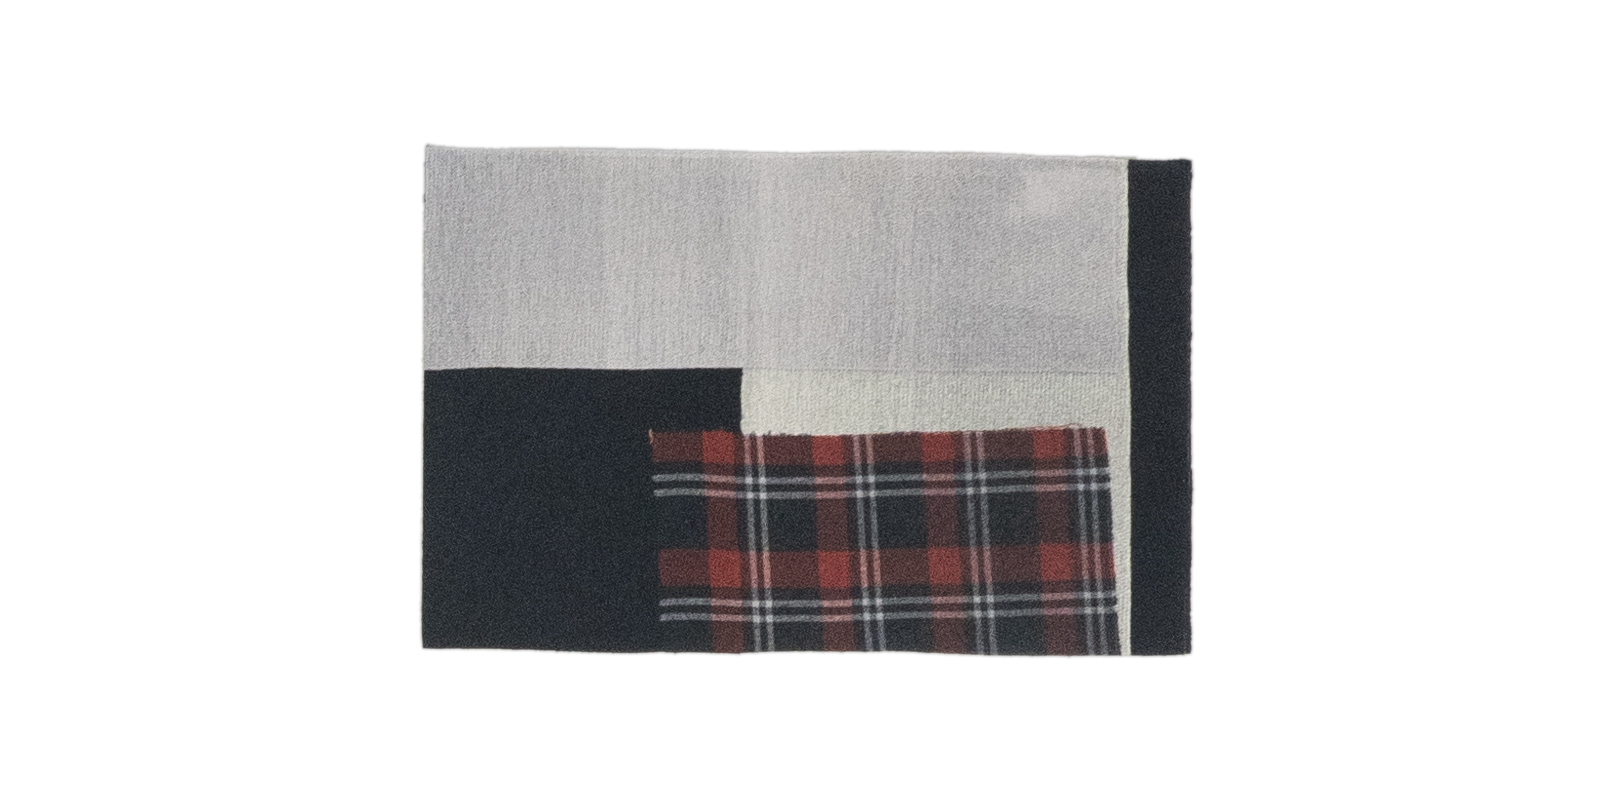 RUG FROM LIFESTOCK S-145